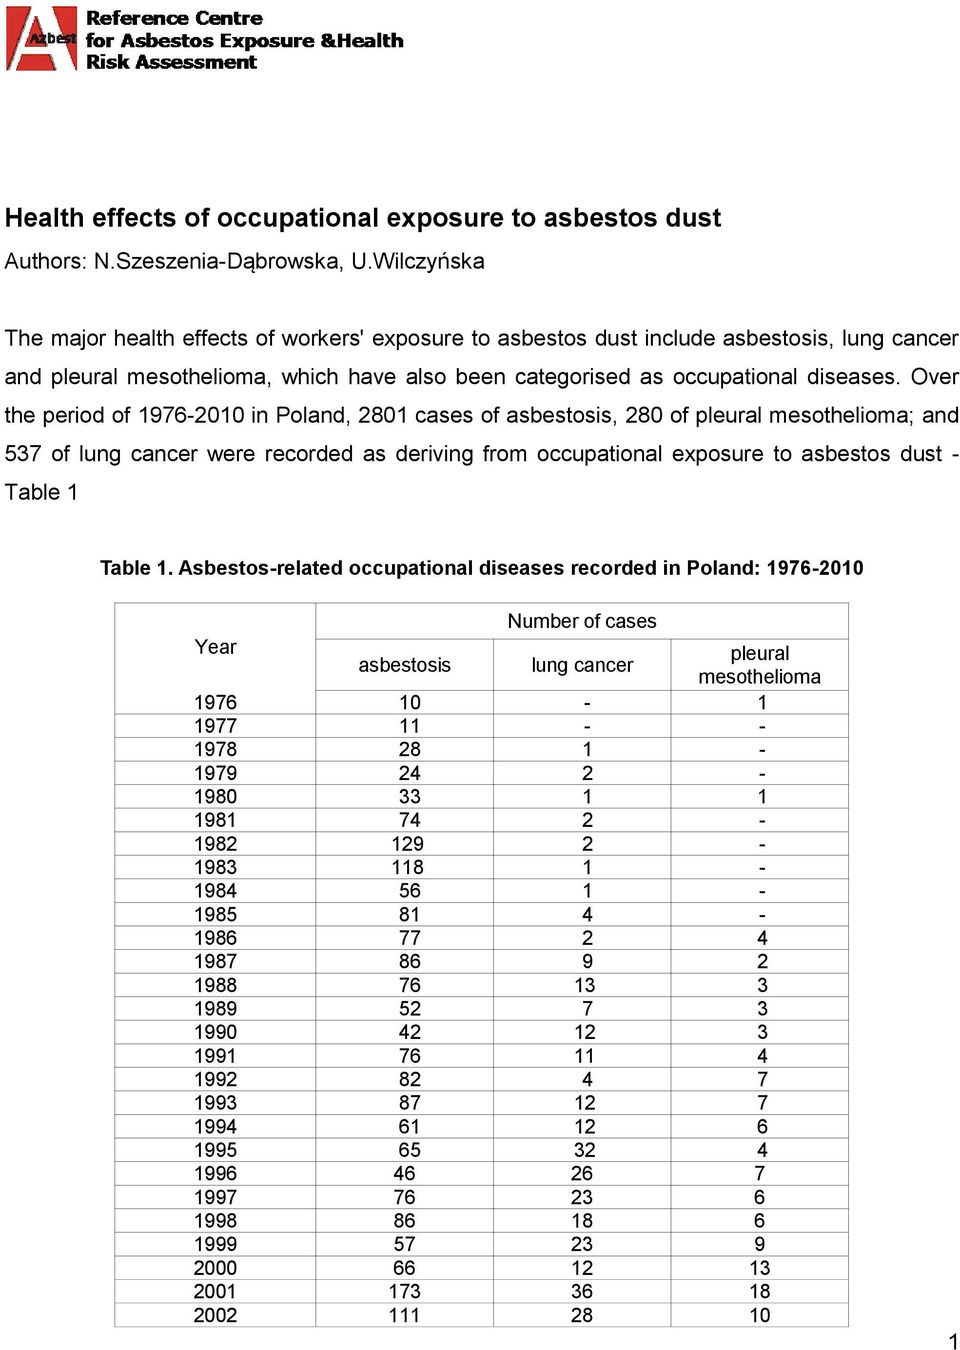 Over the period of 1976-2010 in Poland, 2801 cases of asbestosis, 280 of pleural mesothelioma; and 537 of lung cancer were recorded as deriving from occupational exposure to asbestos dust - Table 1